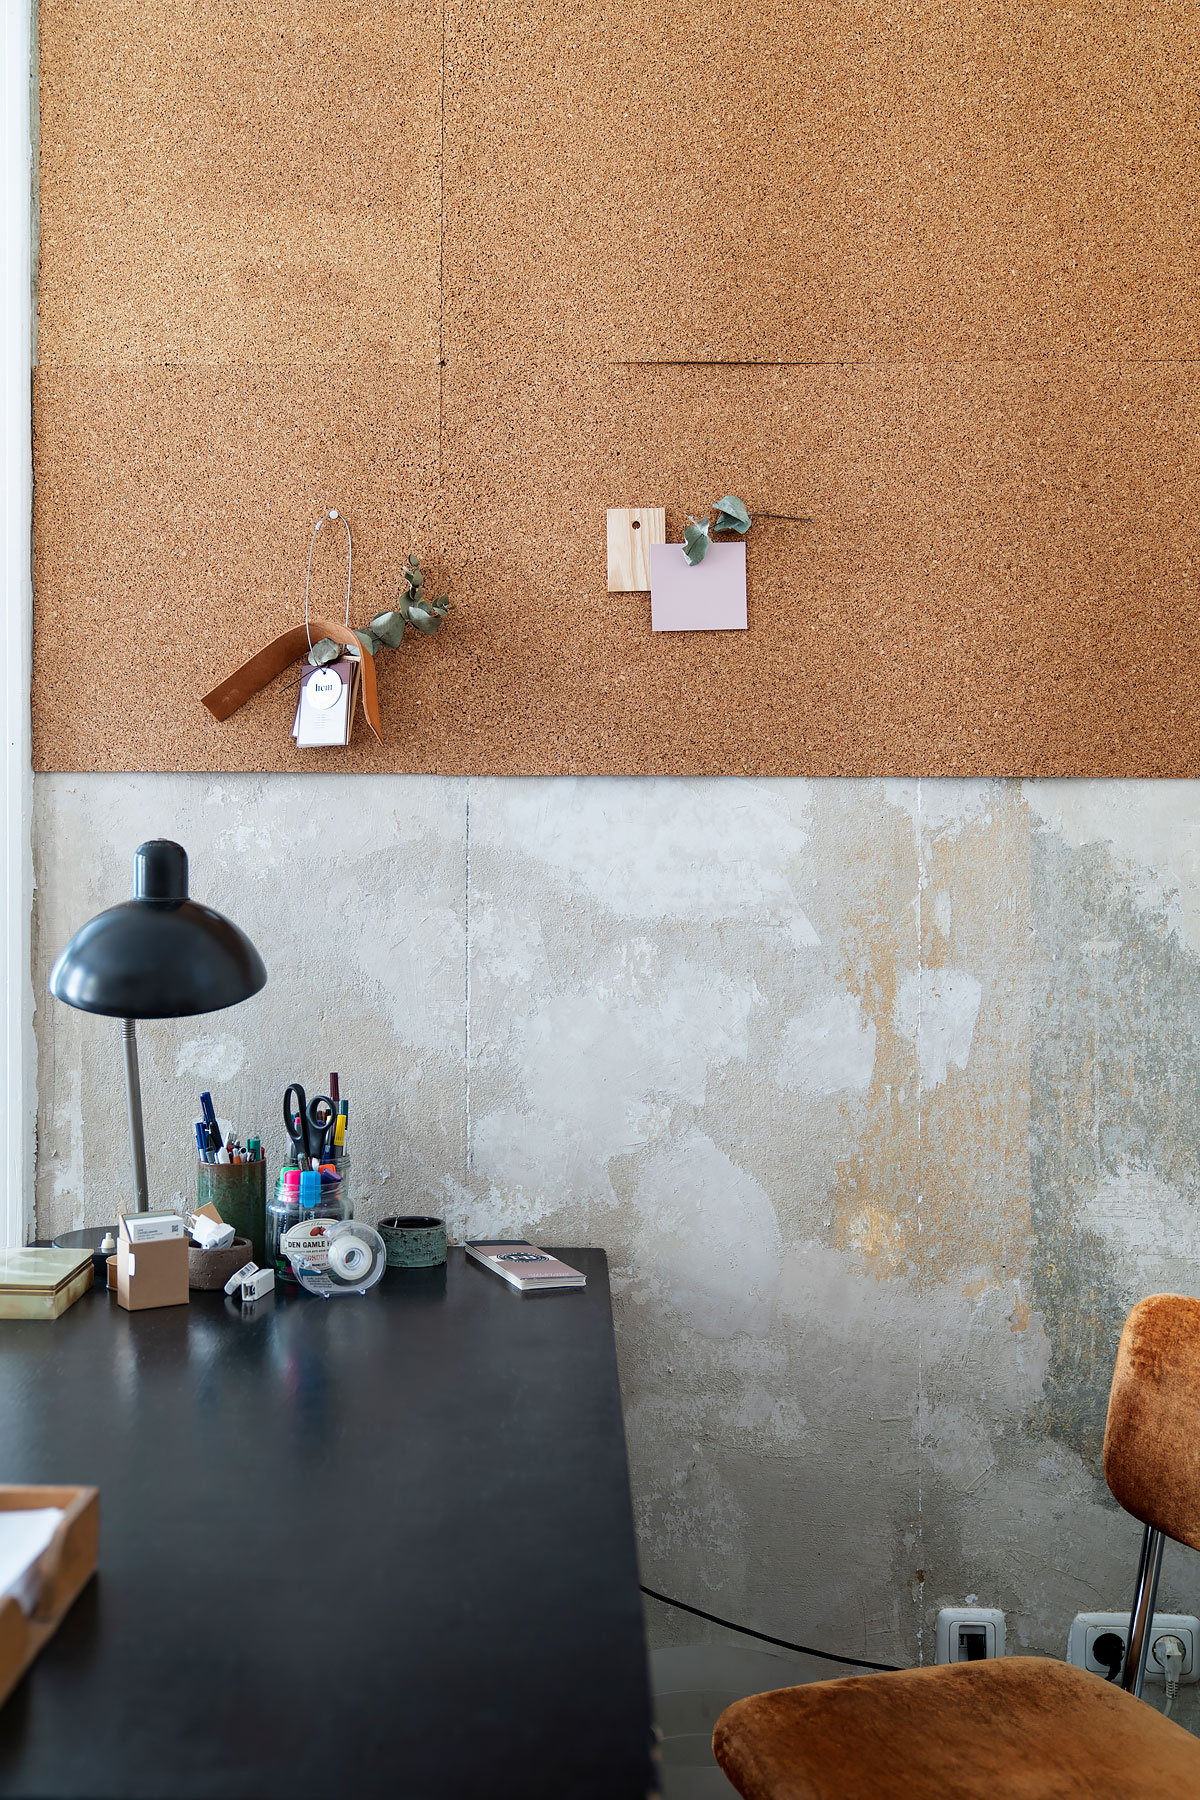 Home office of interior designer based in Berlin